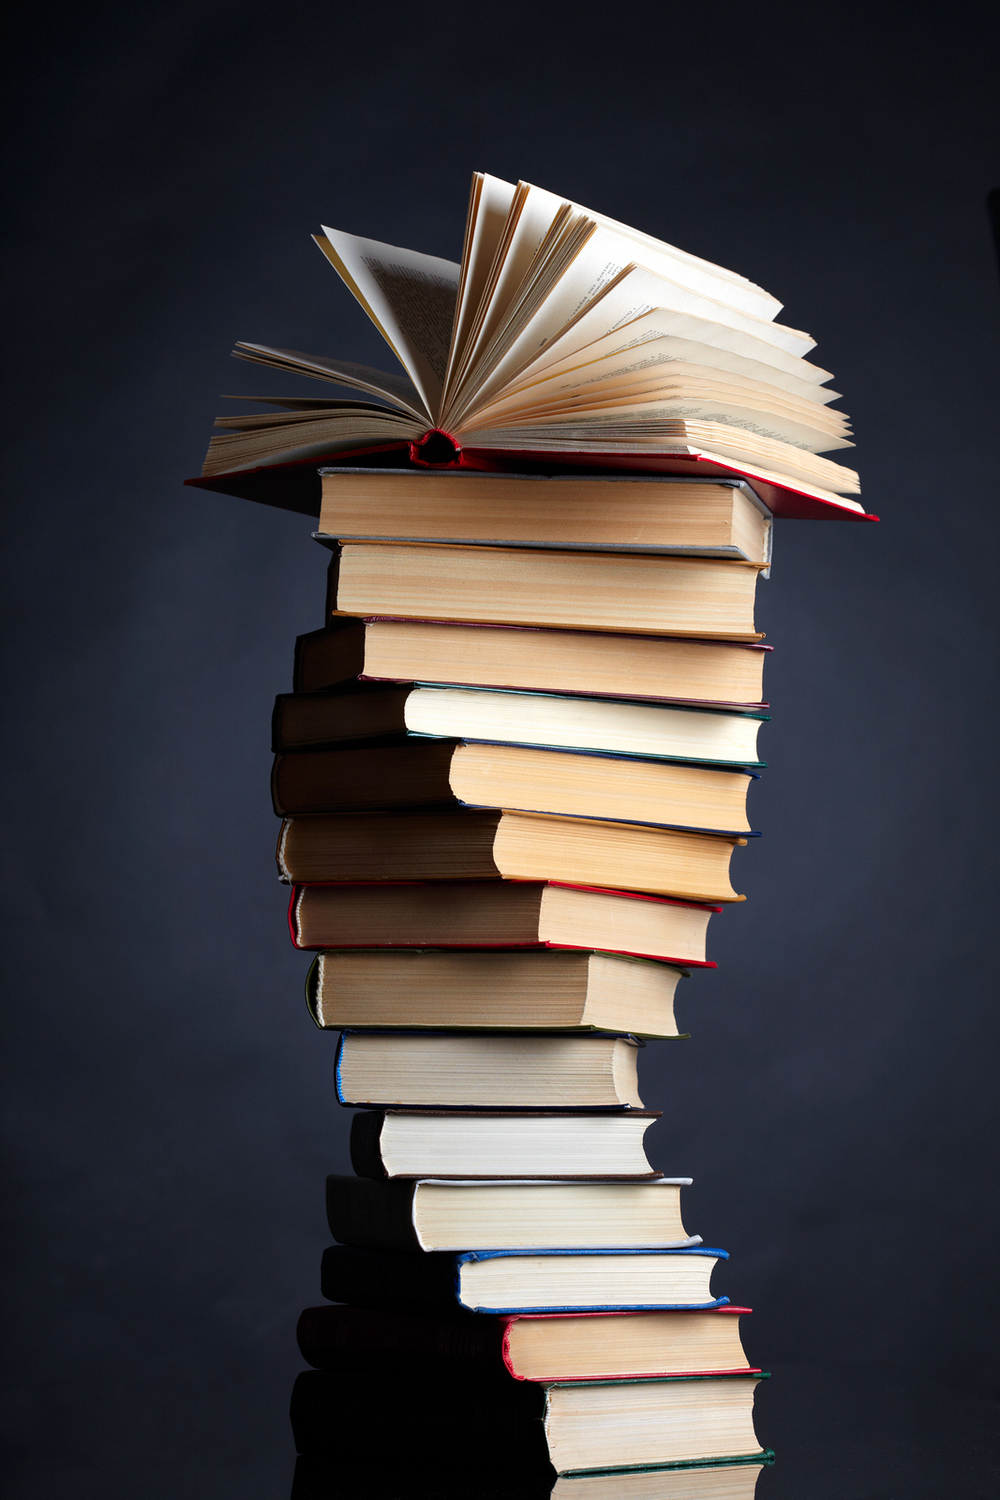 bigstock-Pile-of-books-on-a-black-backg-15350390.jpg